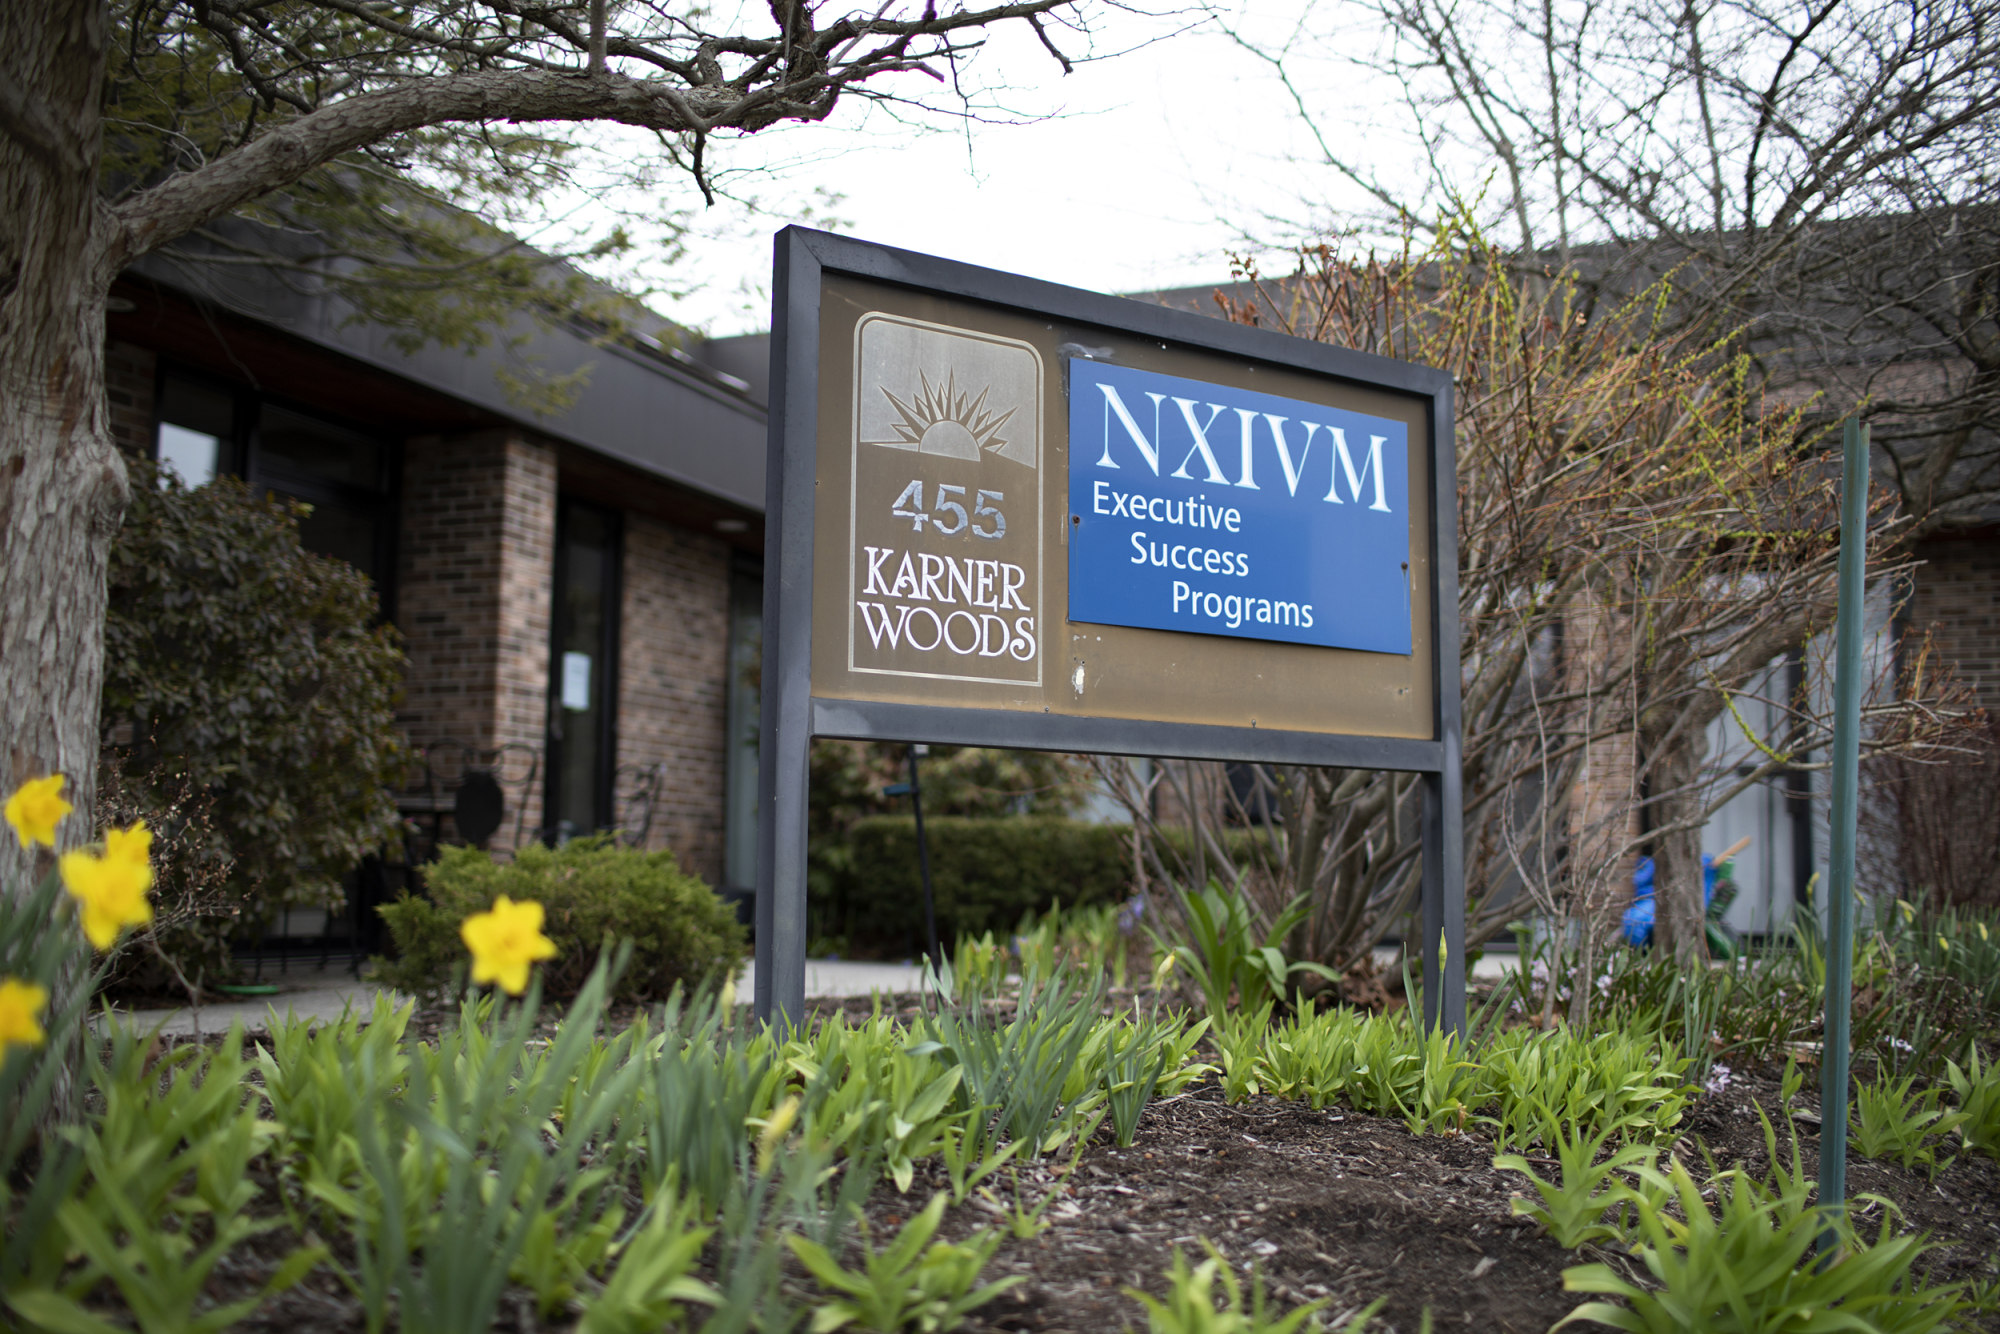 NY doctor tied to NXIVM loses his medical license